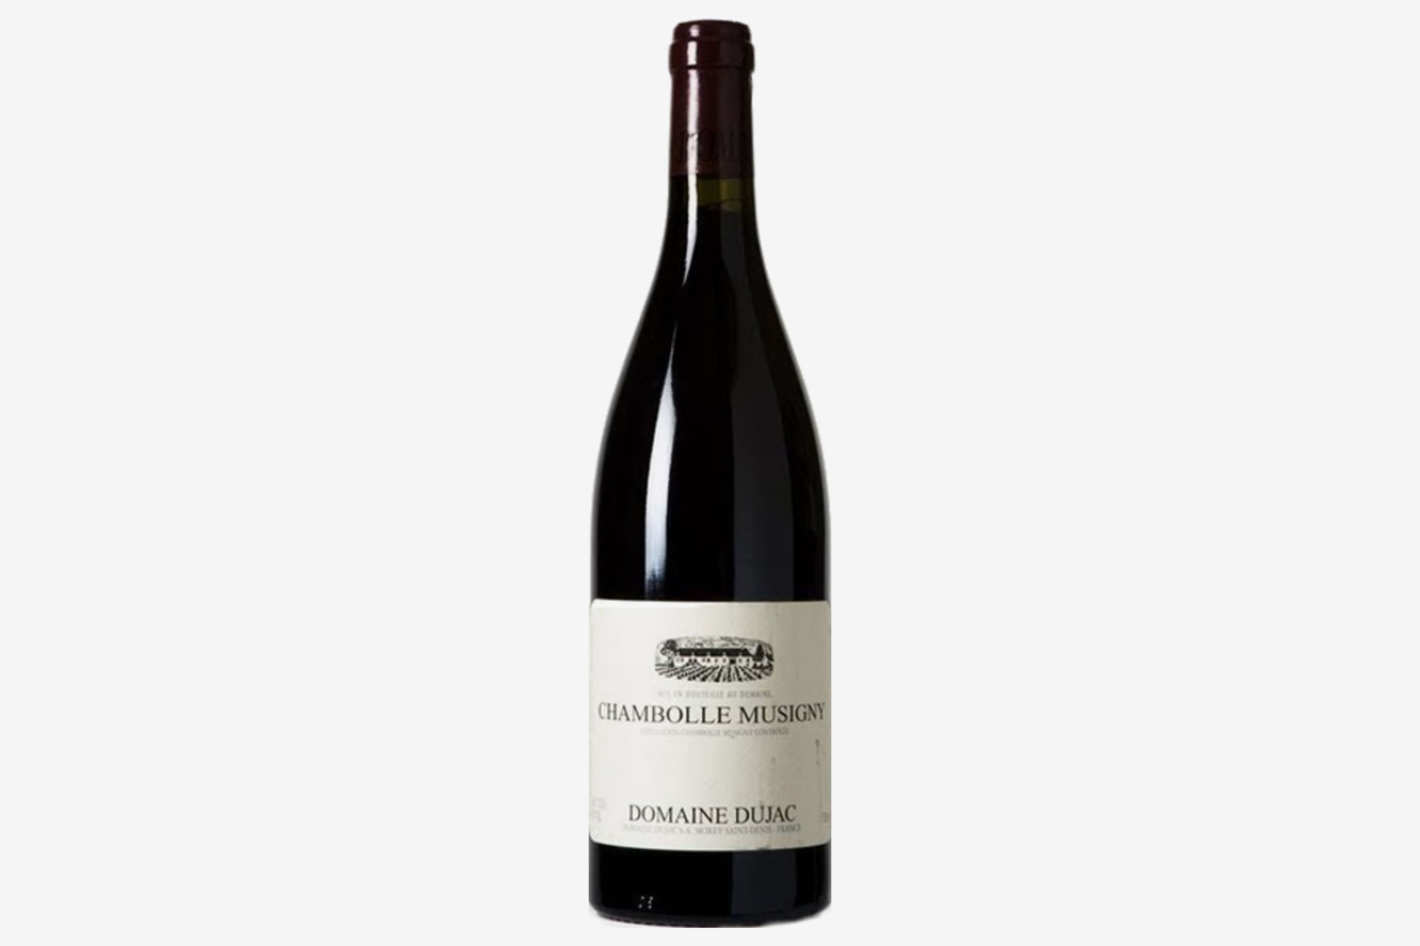 Domaine Dujac Fils & Pere Chambolle-Musigny 2016